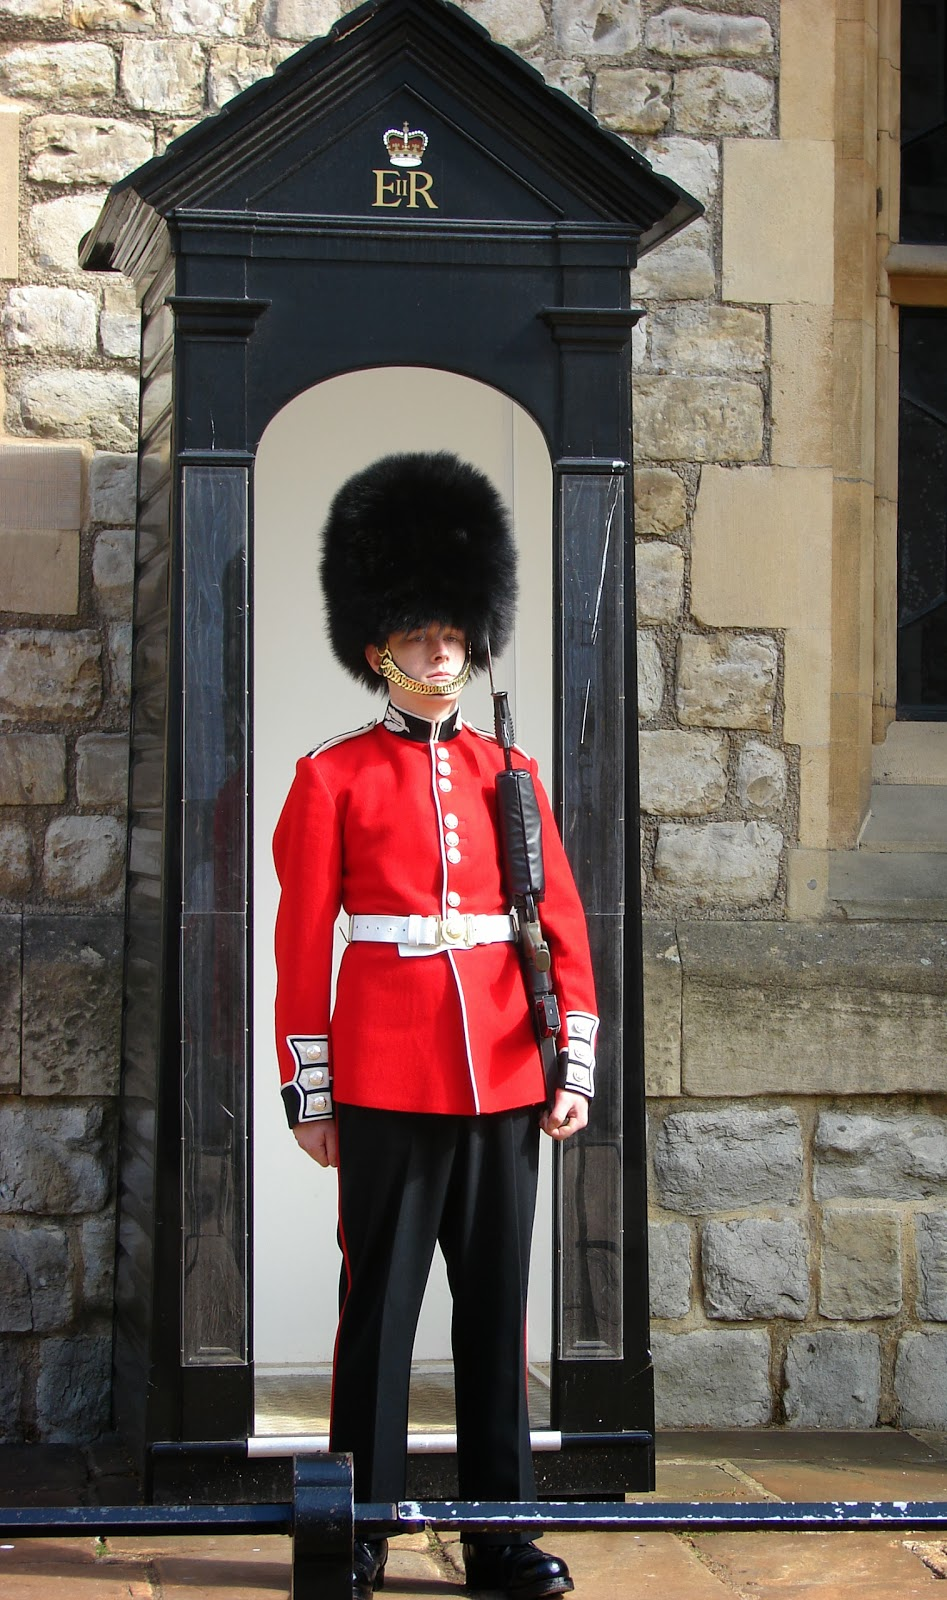 Scots Guards, Tower of London